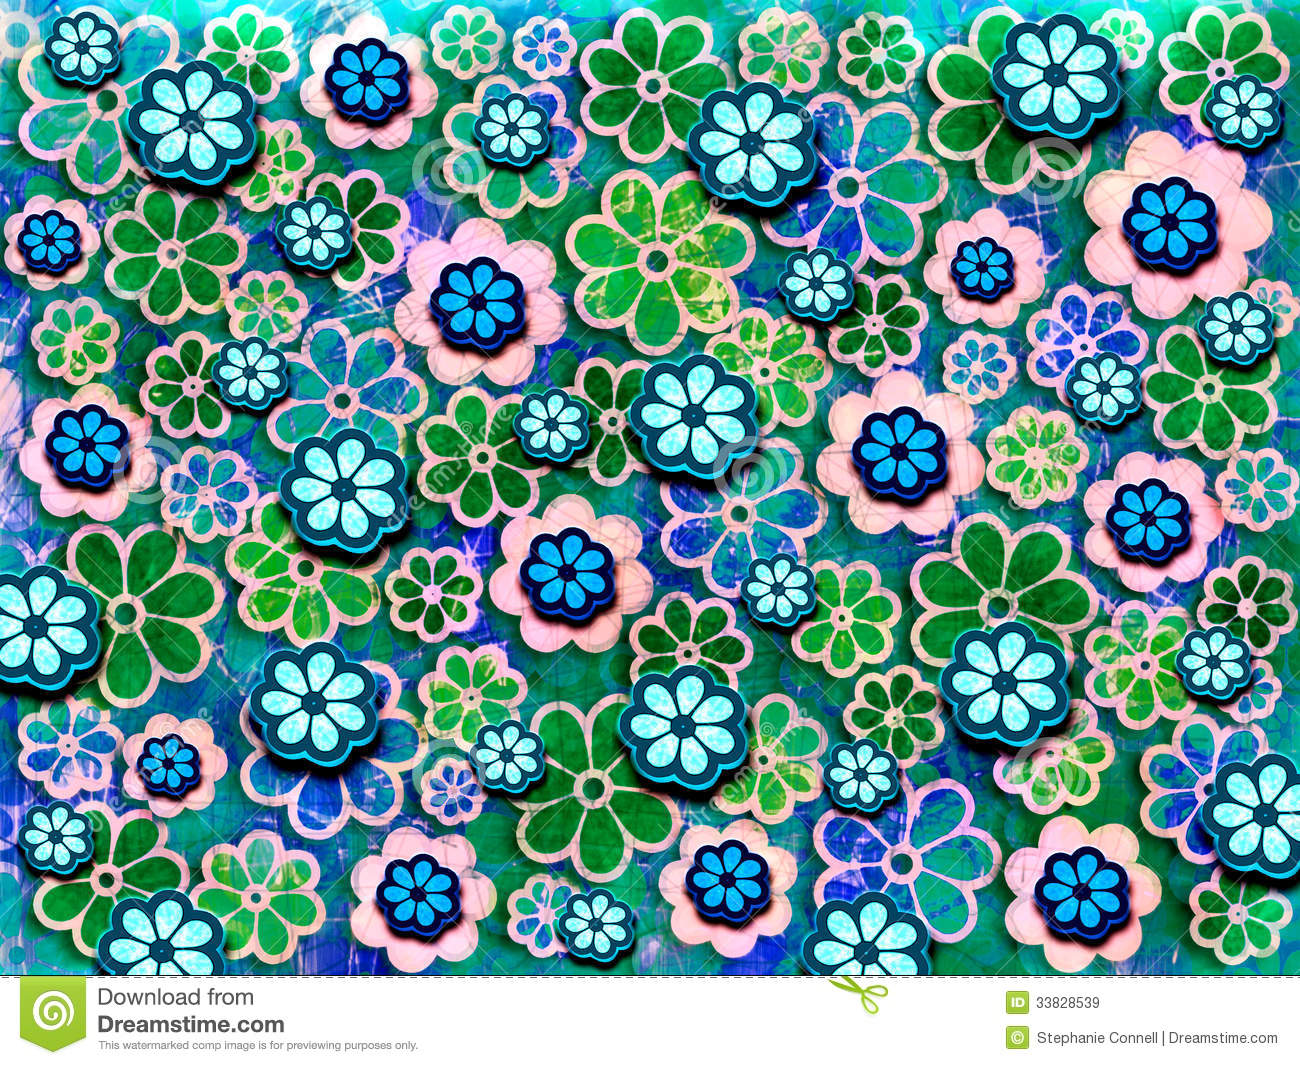 60s background patterns the - photo #31